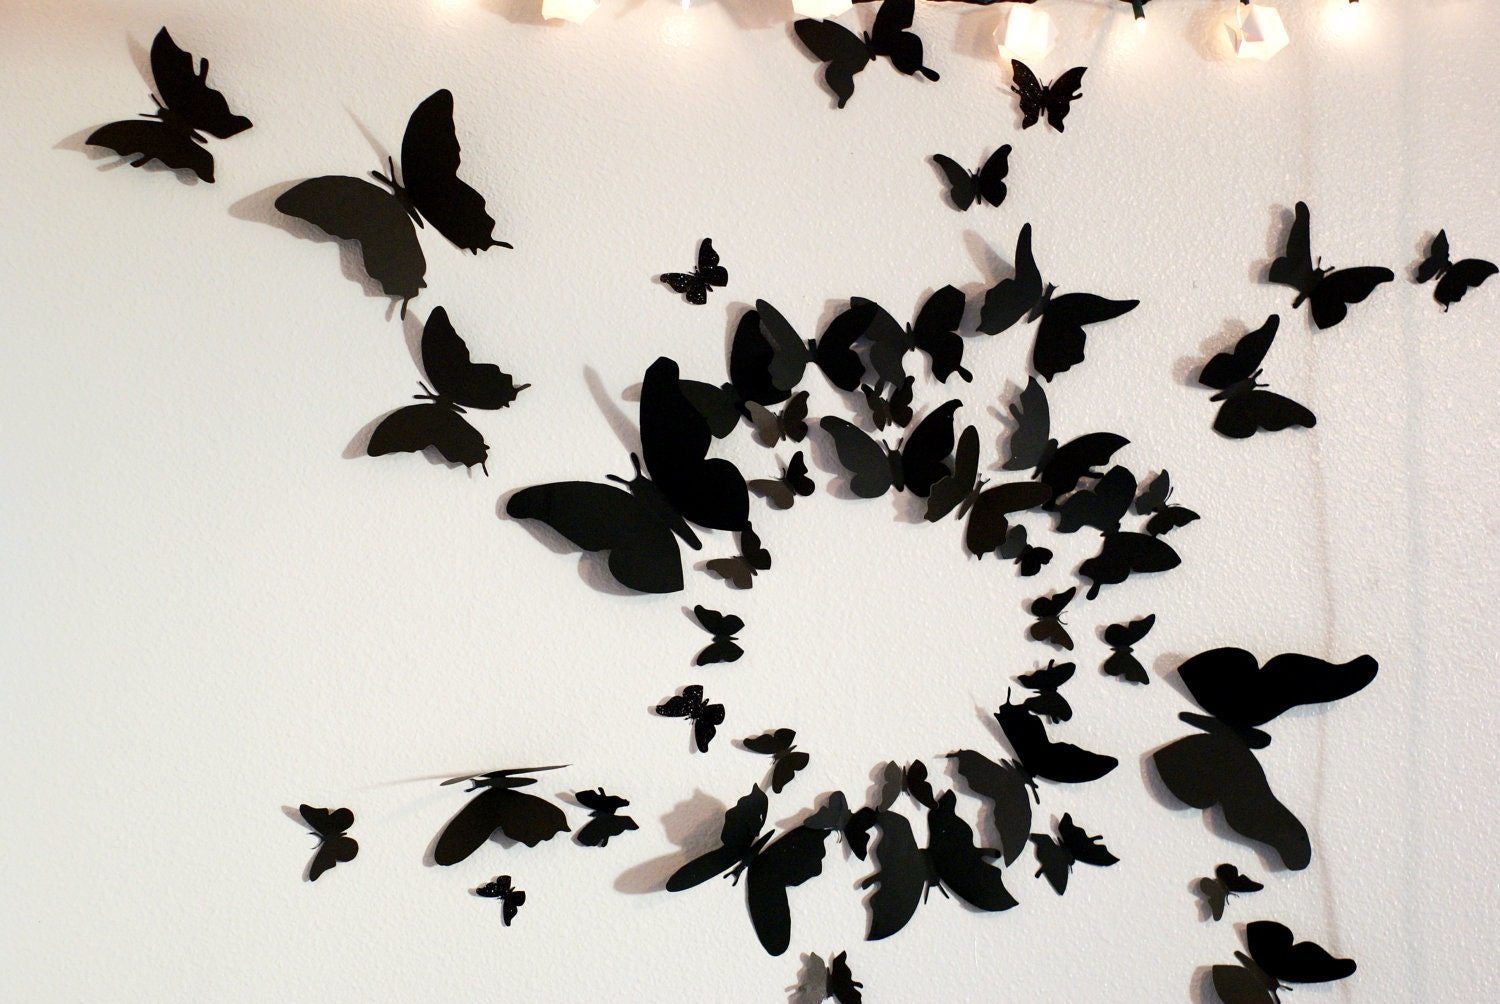 50 3D Butterfly Wall Art Circle Burst by LeeShay on Etsy